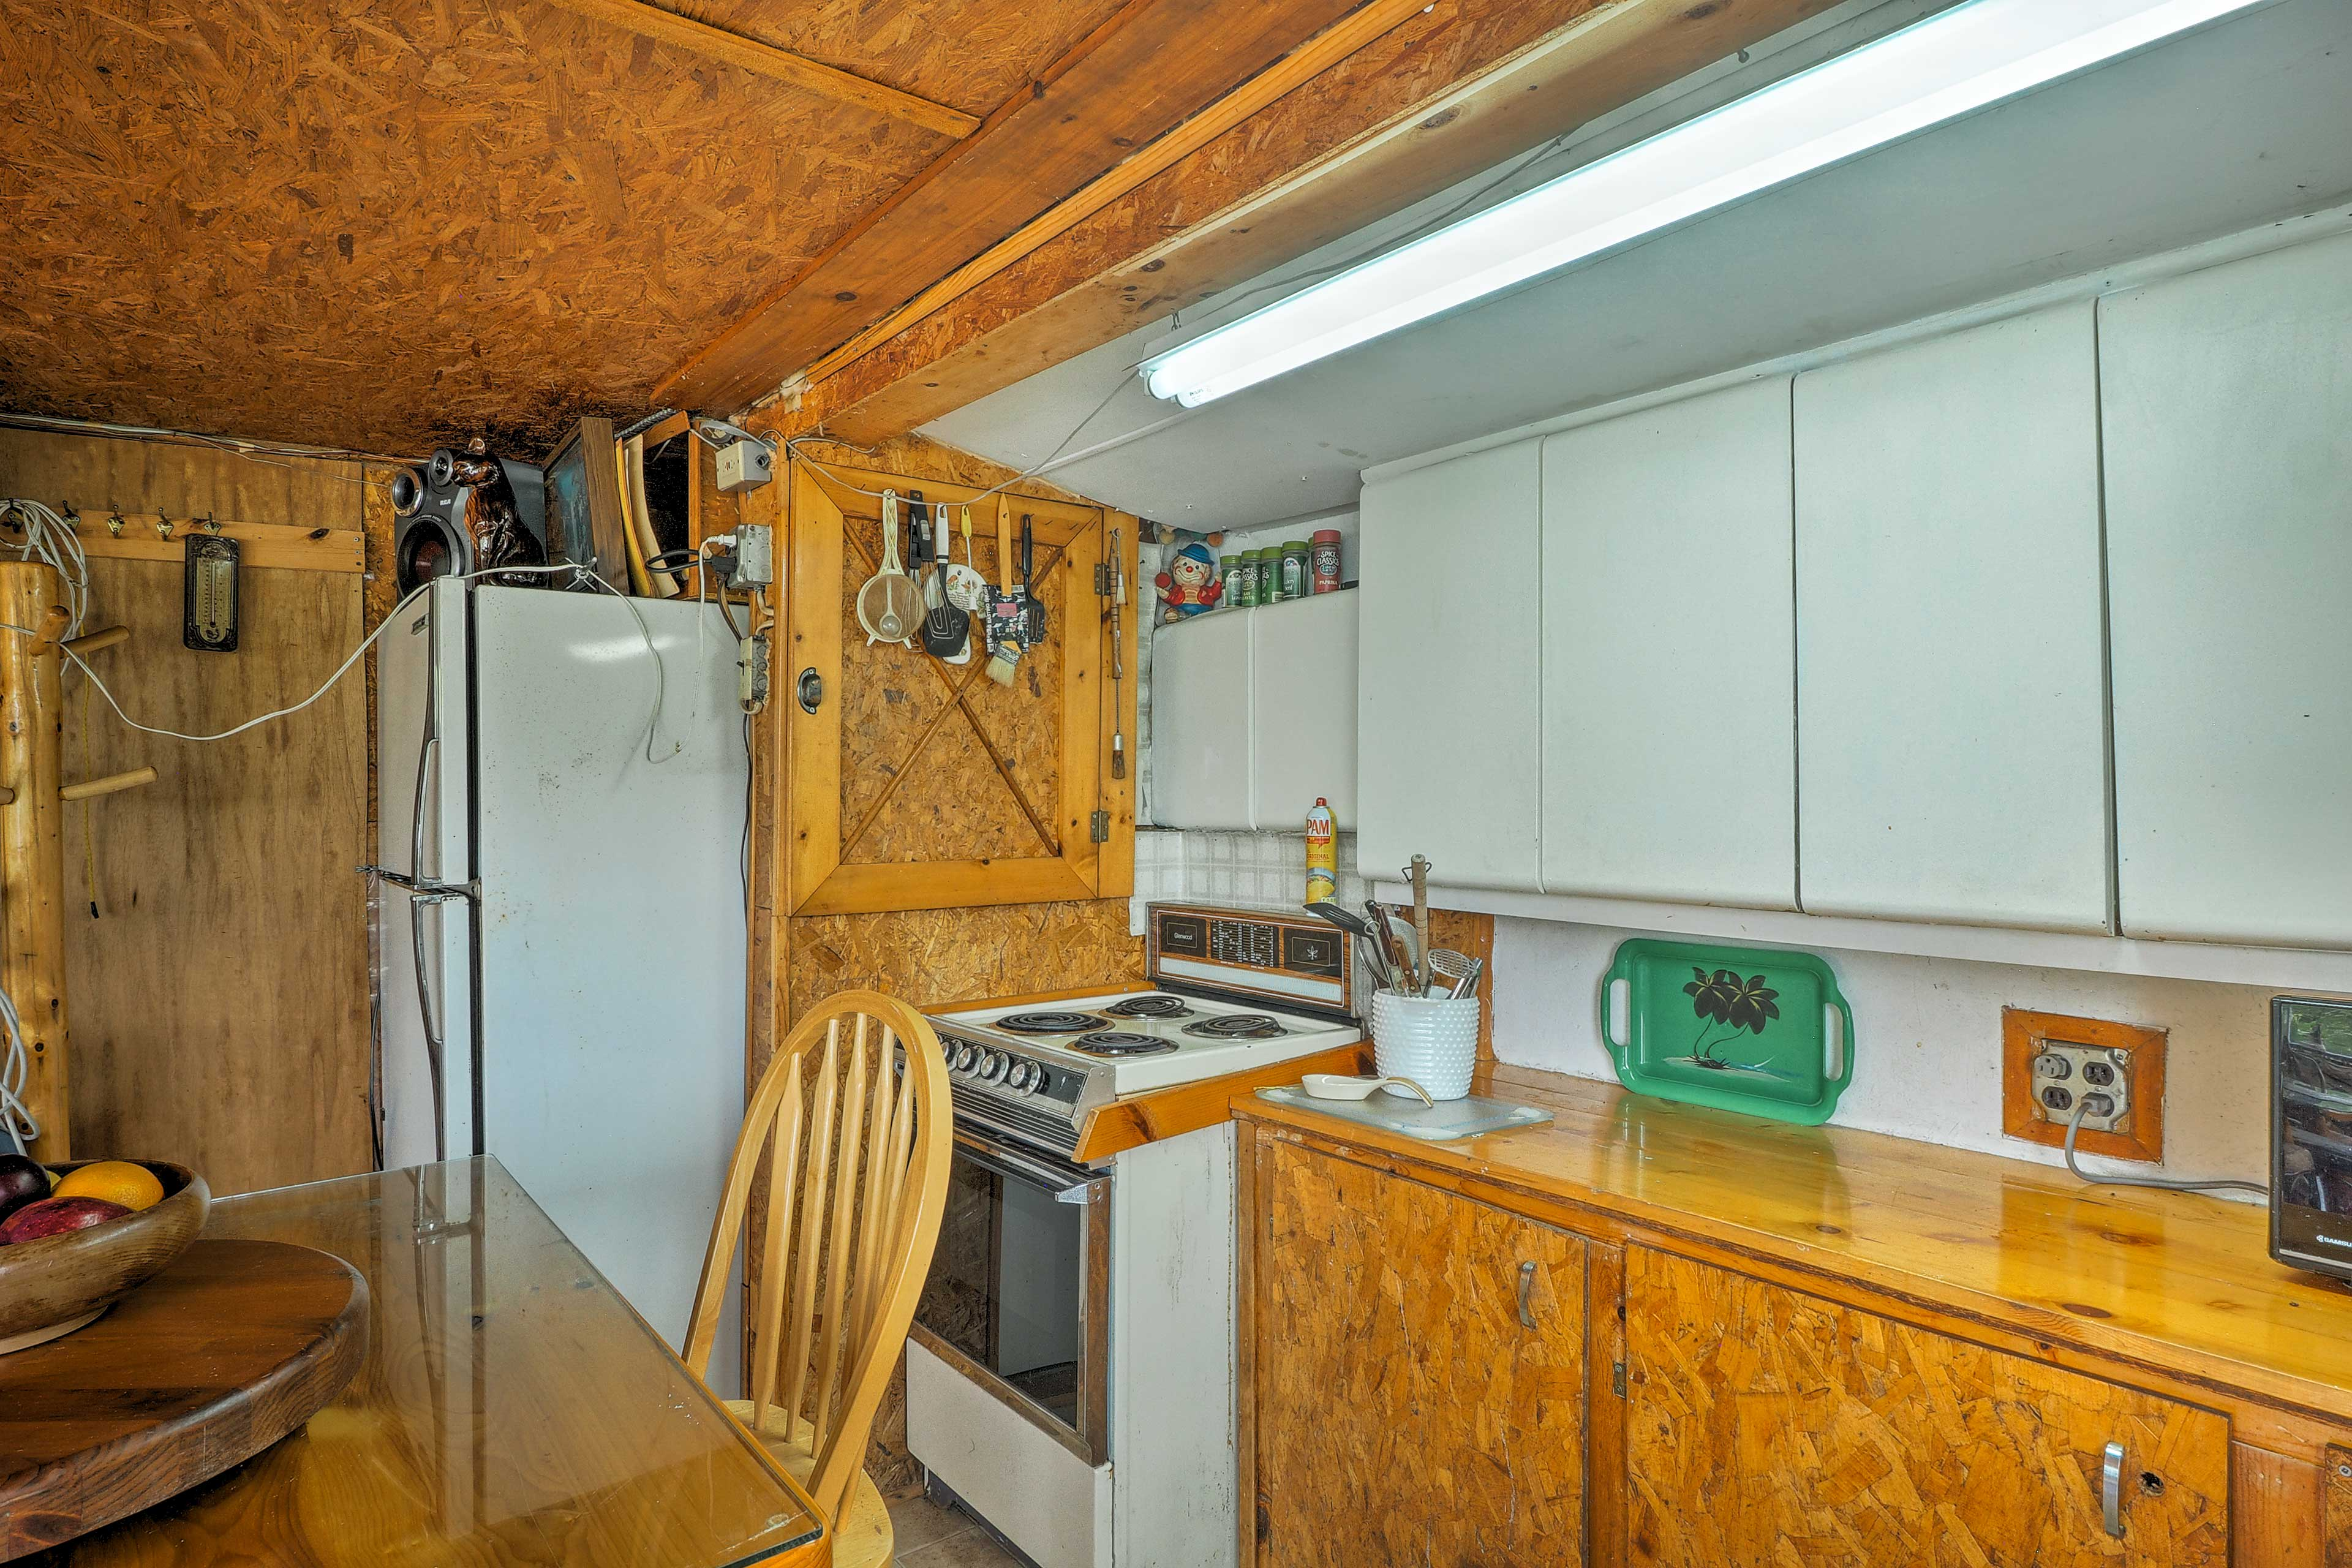 There's even a well-equipped kitchen!